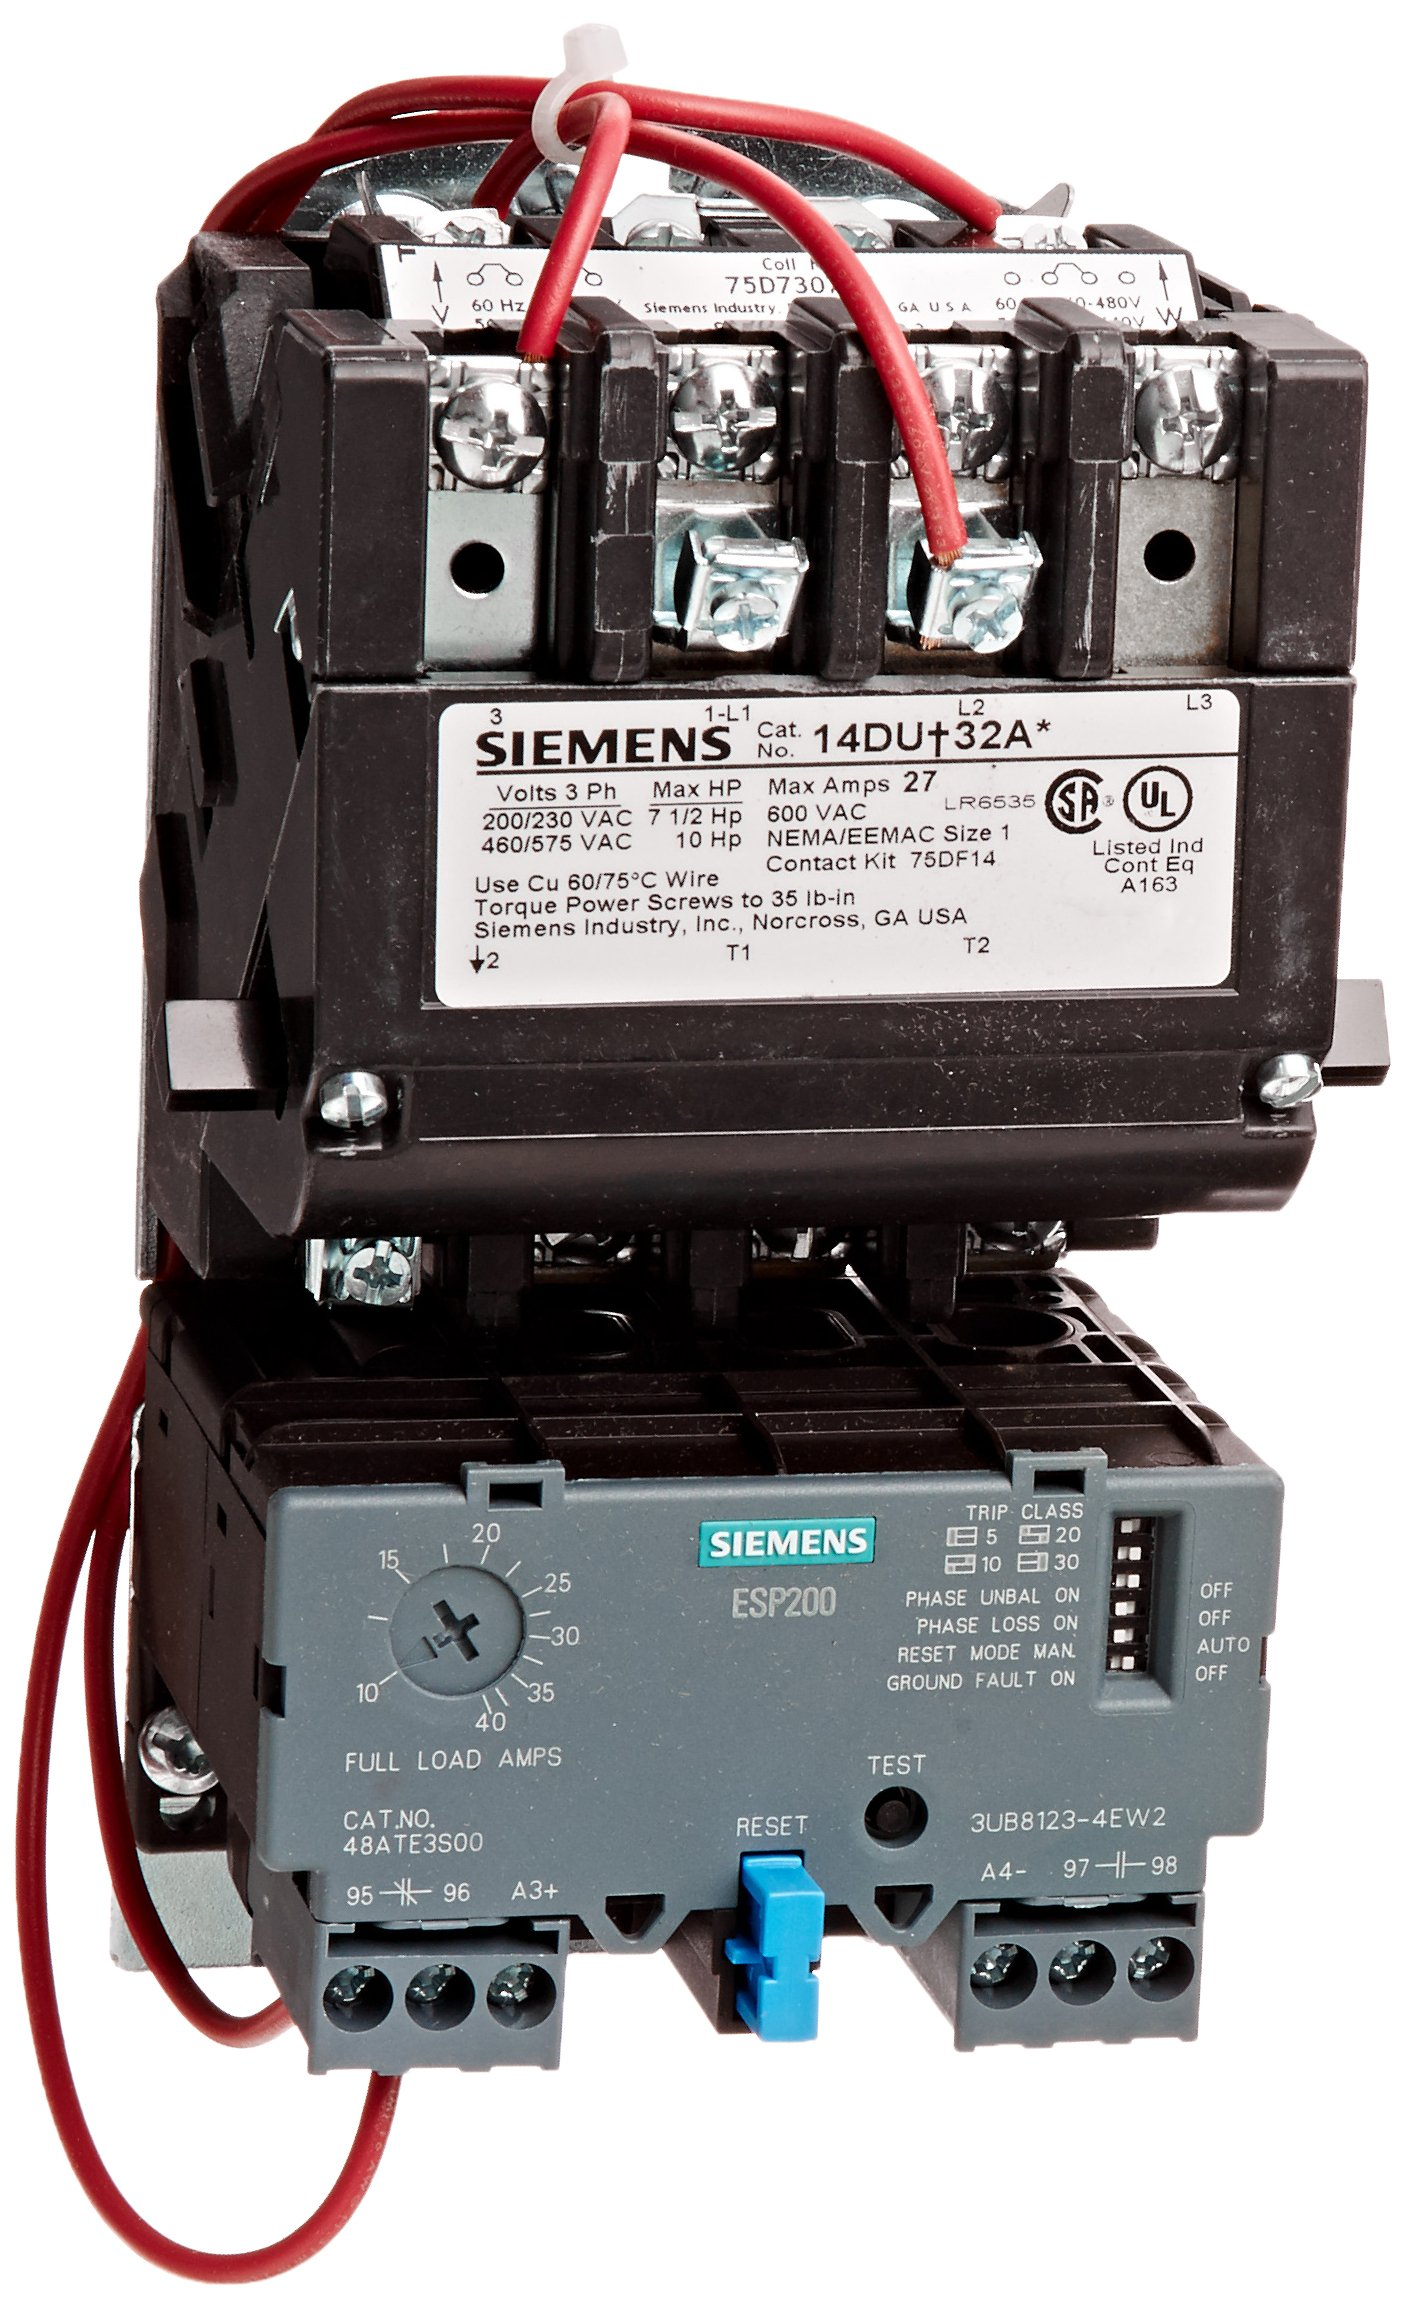 Siemens 14DUE32AC Heavy Duty Motor Starter, Solid State Overload, Auto/Manual Reset, Open Type, Standard Width Enclosure, 3 Phase, 3 Pole, 1 NEMA Size, 10-40A Amp Range, A1 Frame Size, 220-240/440-480 at 60Hz Coil Voltage